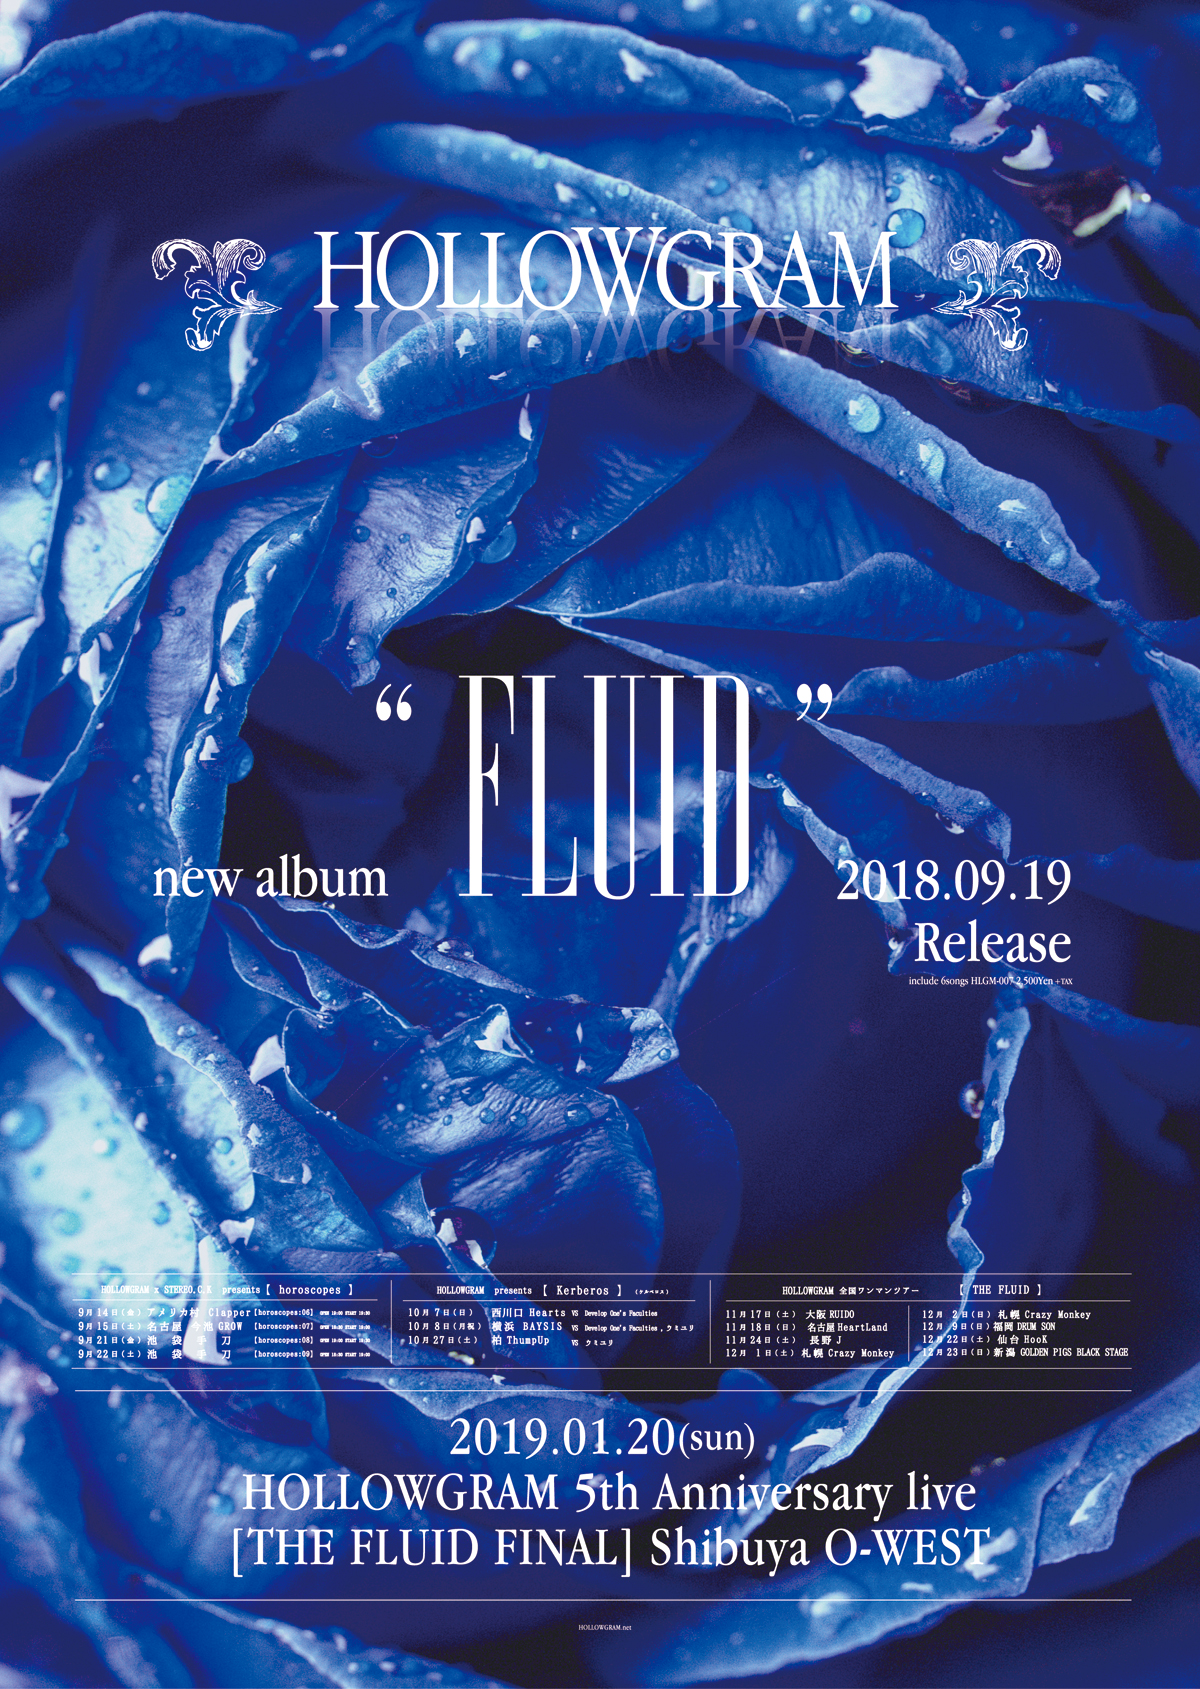 "HOLLOWGRAM new album""FLUID"" 2018.09.19 Release / 2019.01.20(sun) HOLLOWGRAM 5th Anniversary [THE FLUID FINAL] Shibuya O-WEST"